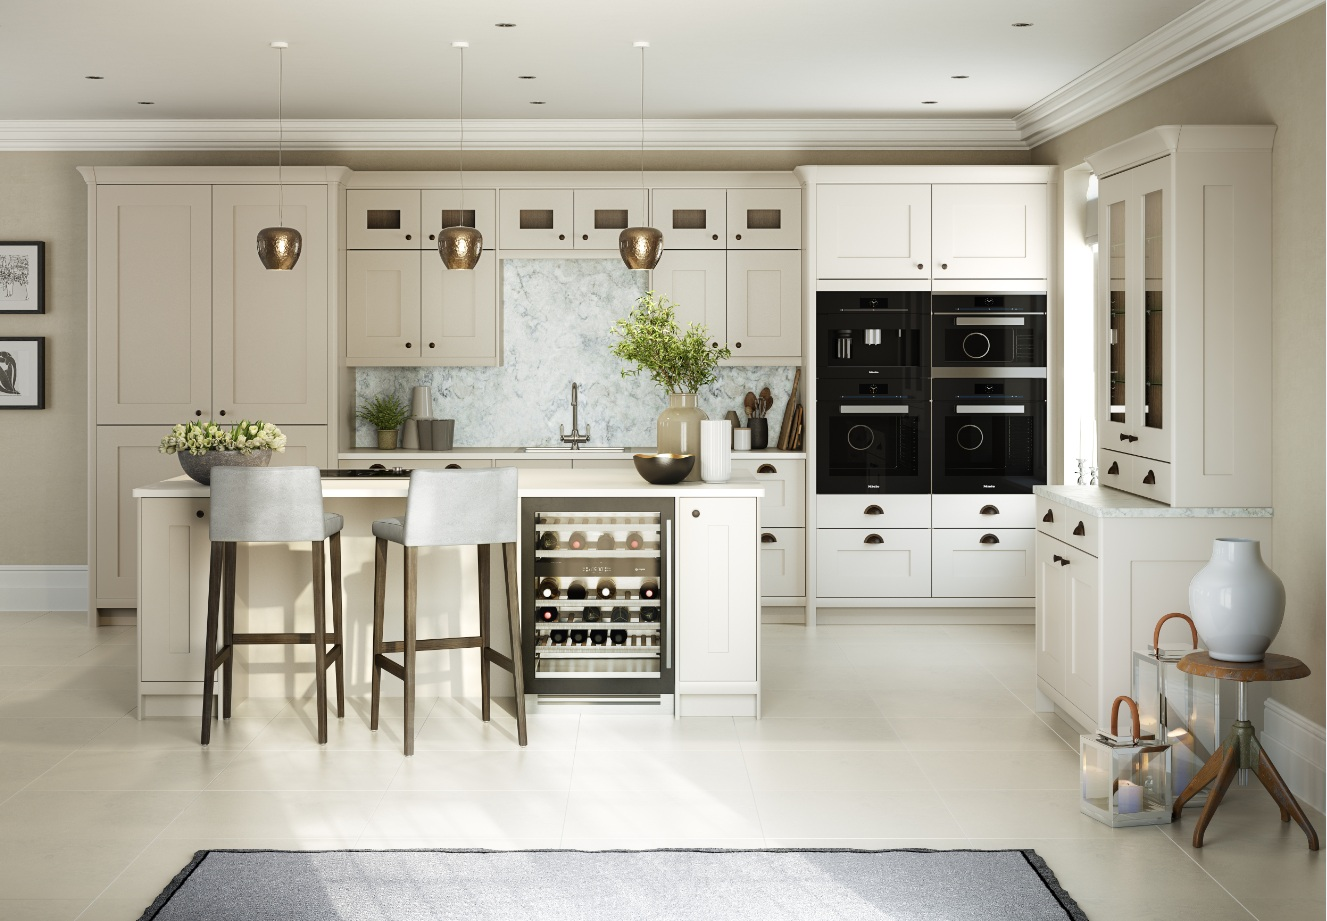 Henley Kitchen Daval Part 2.jpg